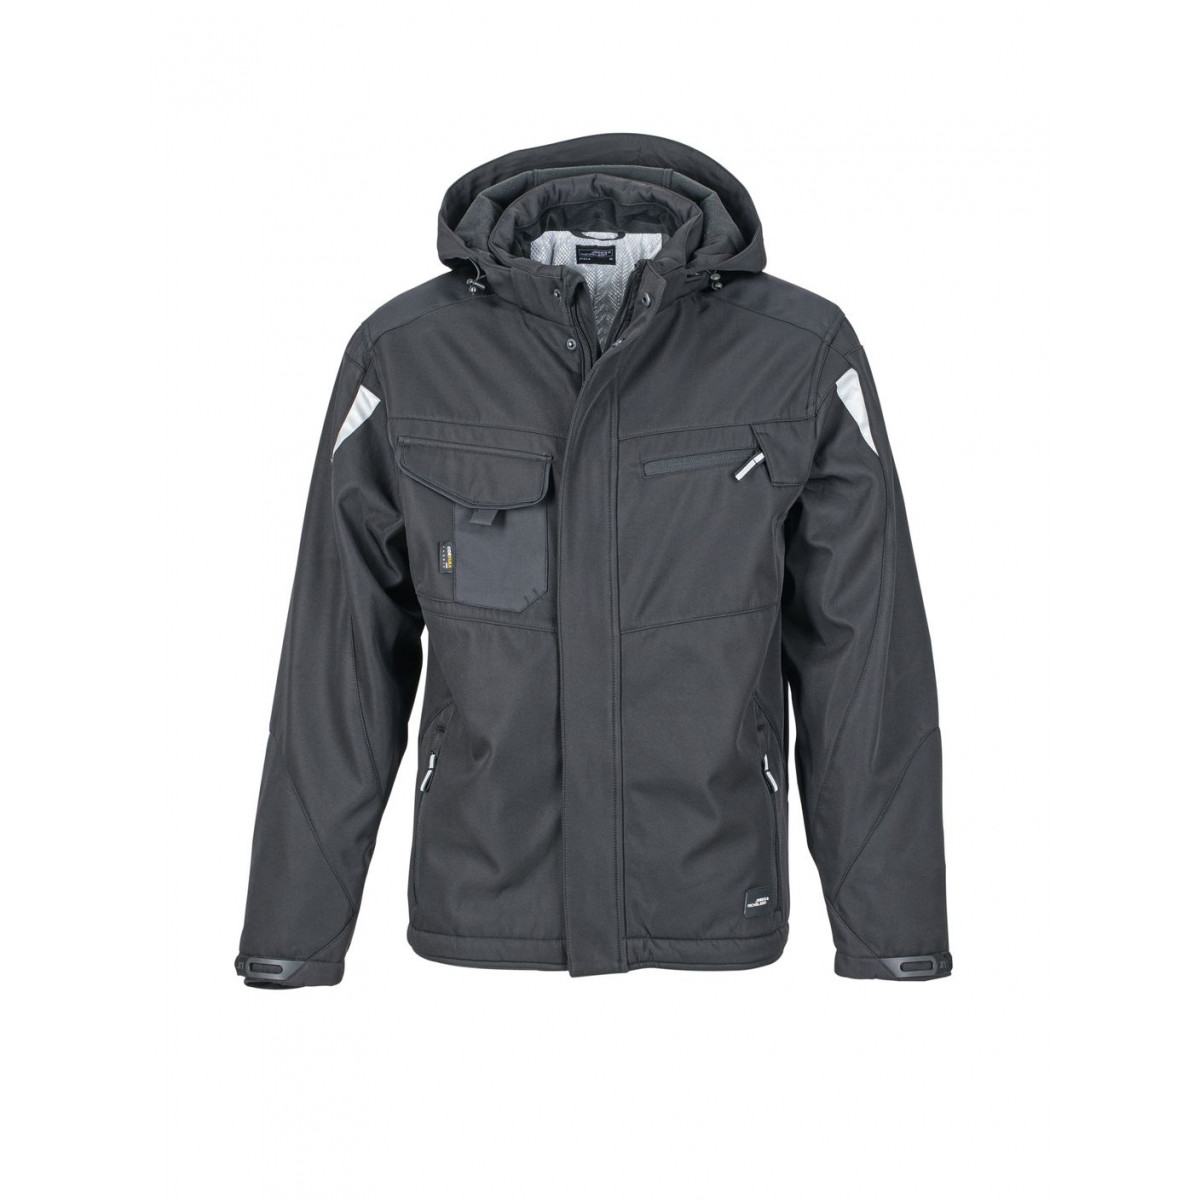 Куртка мужская JN824 Craftsmen Softshell Jacket - Черный/Черный